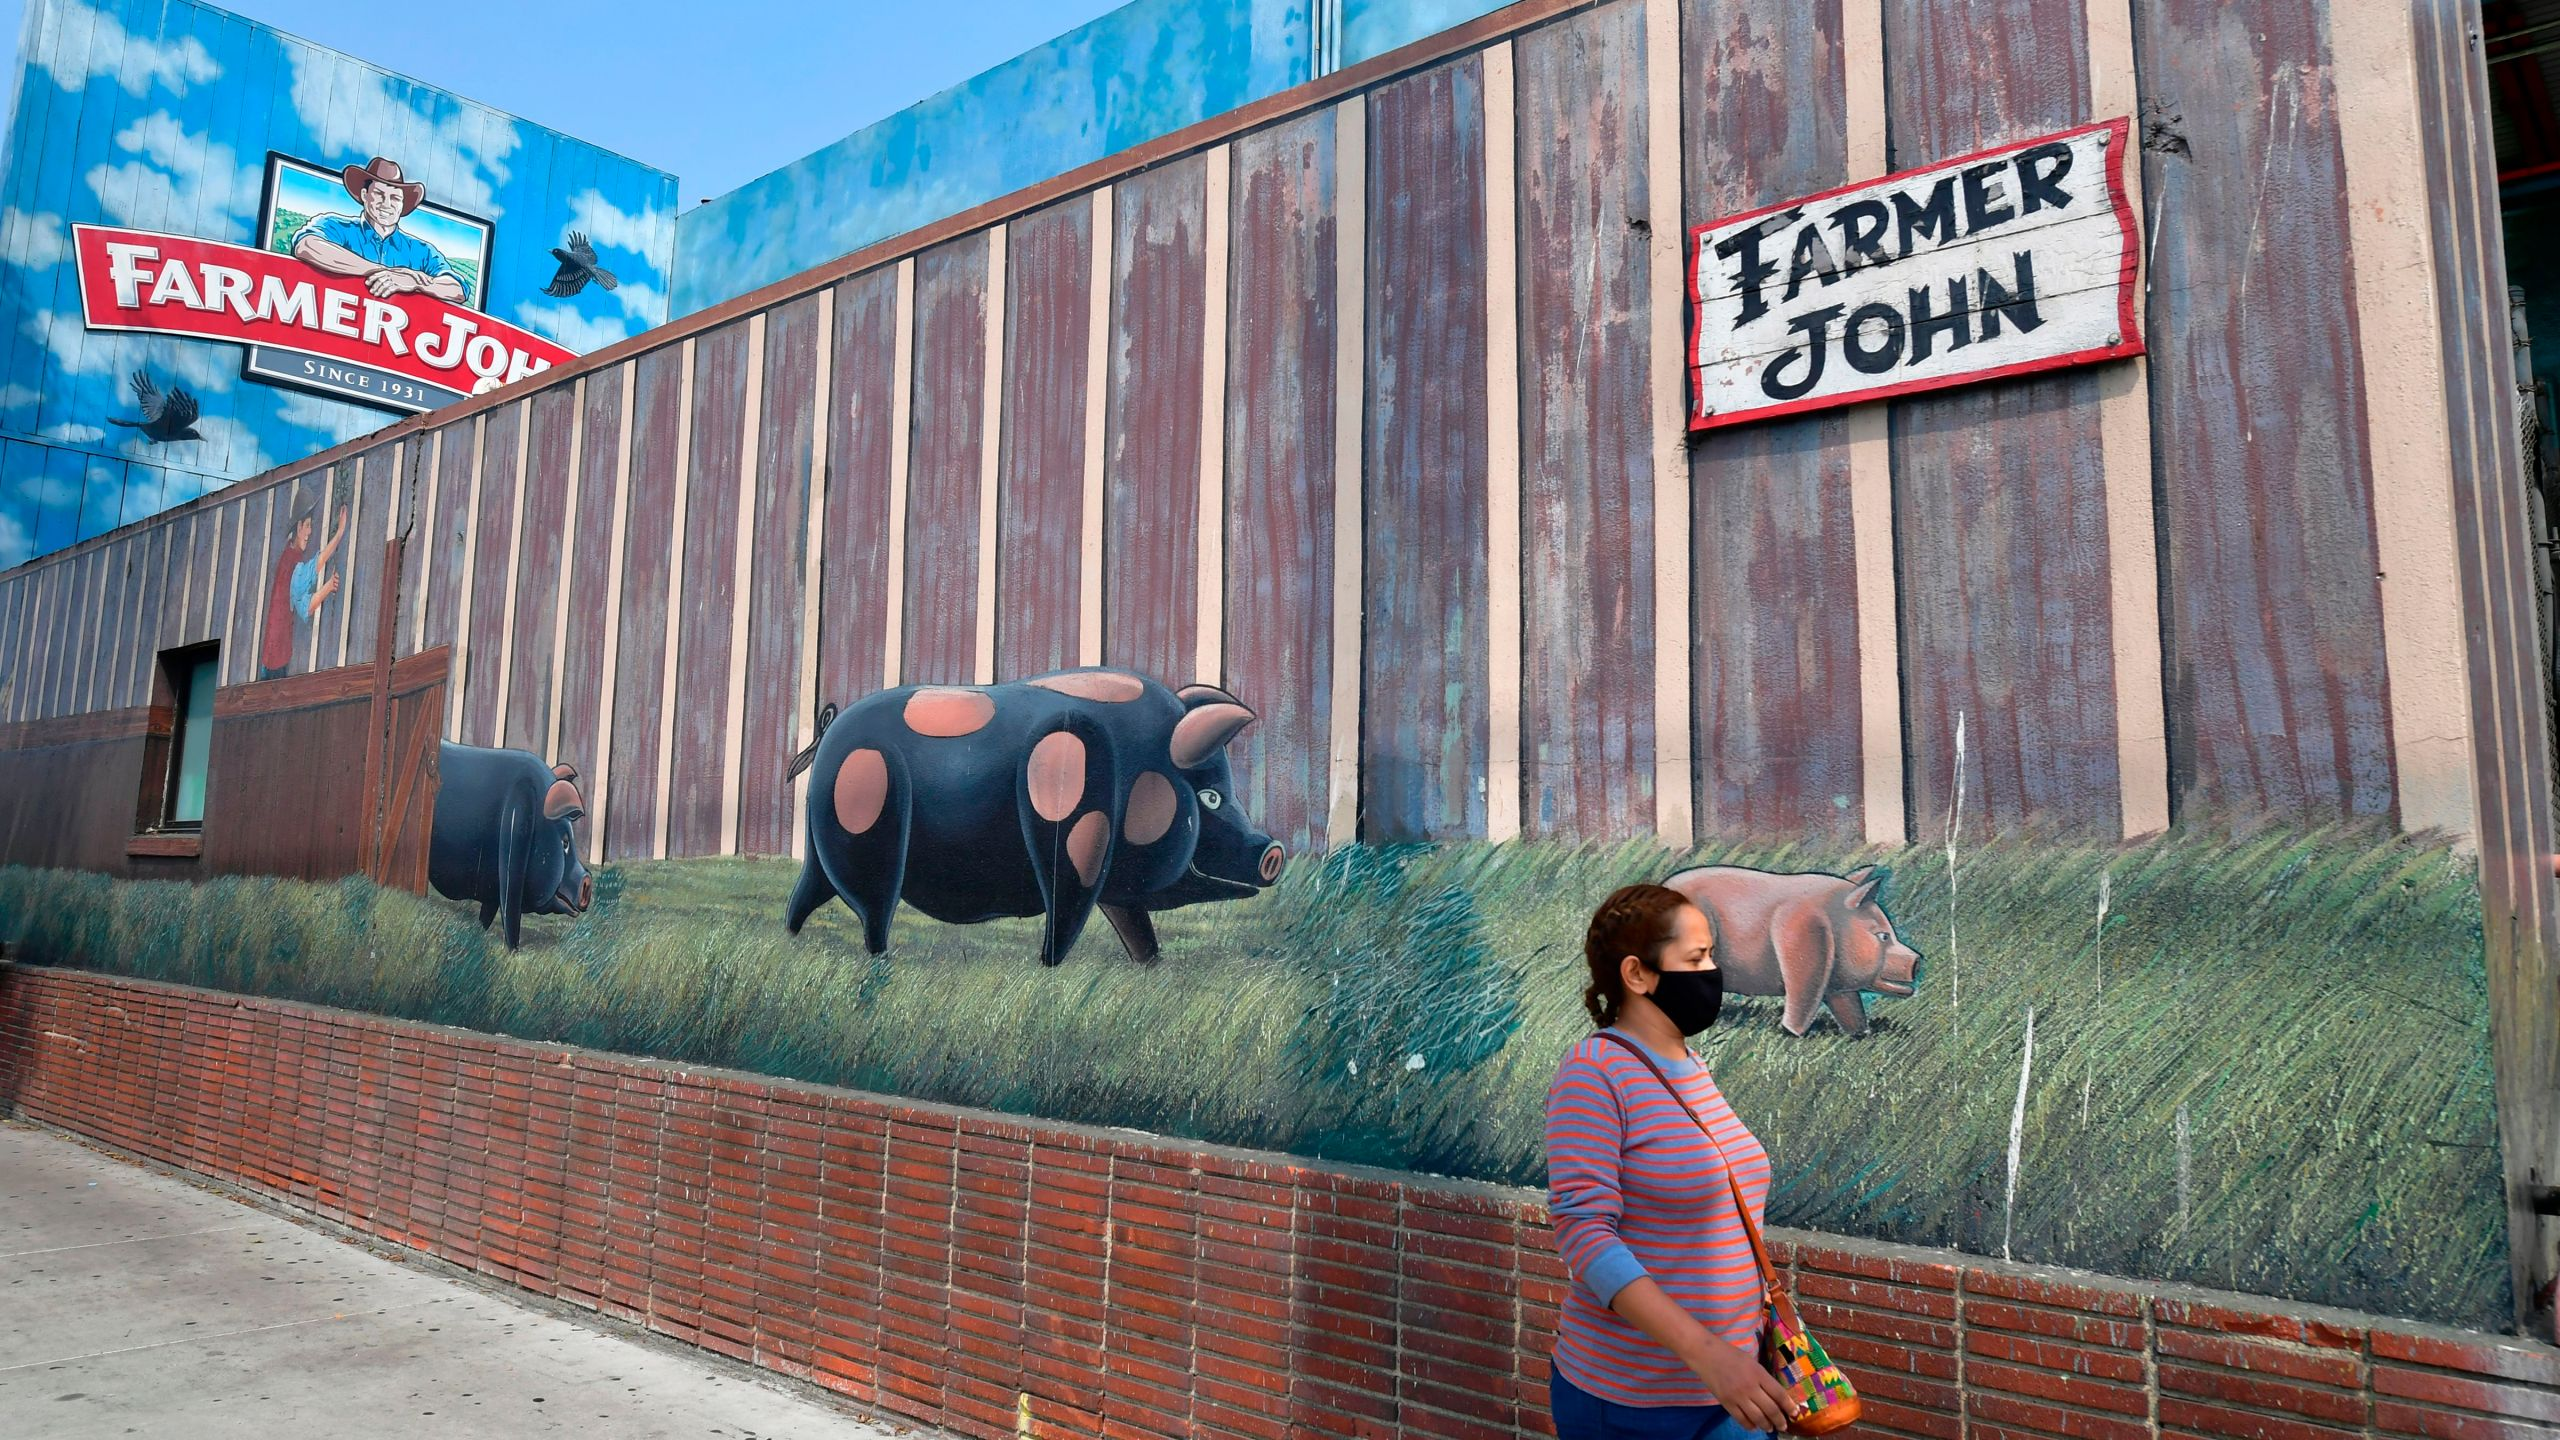 In this Sept. 14, 2020, photo, a woman wears a facemask while walking past the Farmer John plant in Vernon, which was hit with a safety fine after an outbreak of hundreds of coronavirus cases. (Frederic J. Brown / AFP / Getty Images)